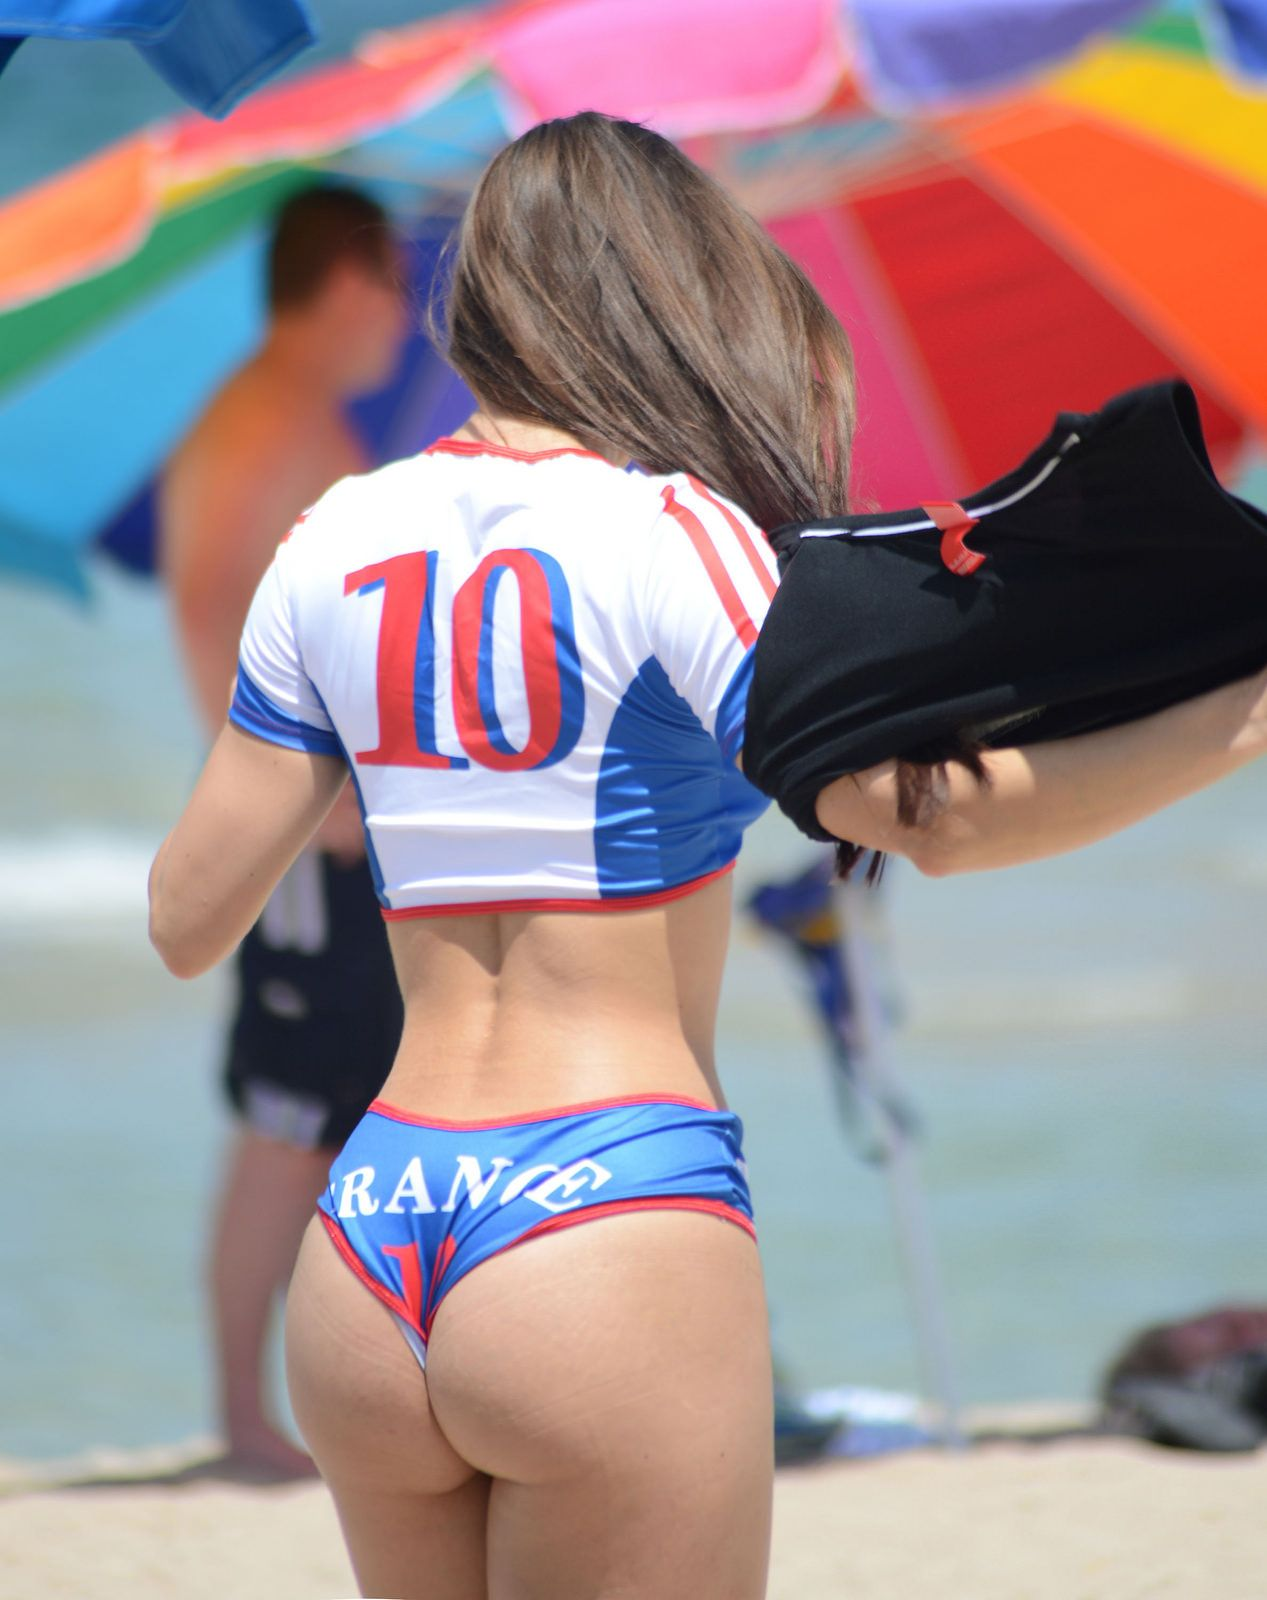 sexy ass | hot pics | pinterest | sport girl, girls and woman